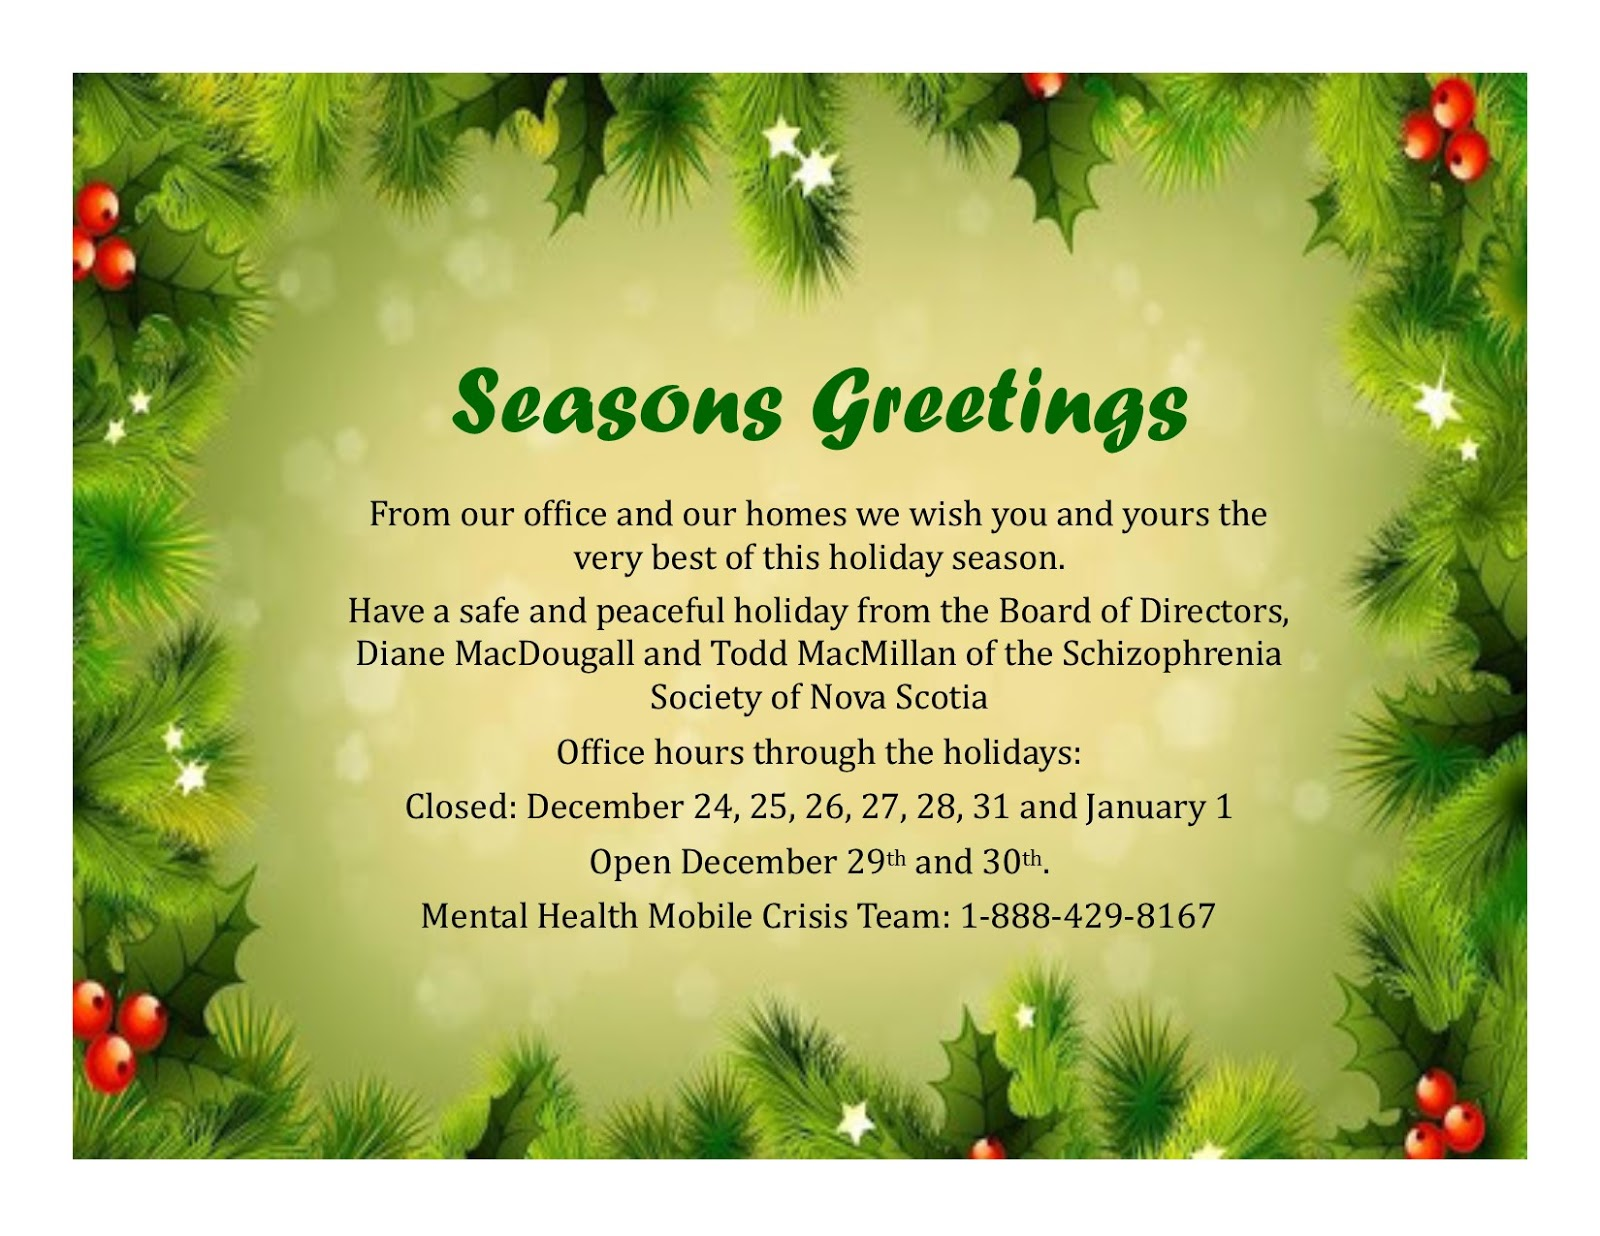 Schizophrenia society of nova scotia seasons greetings from the ssns kristyandbryce Images